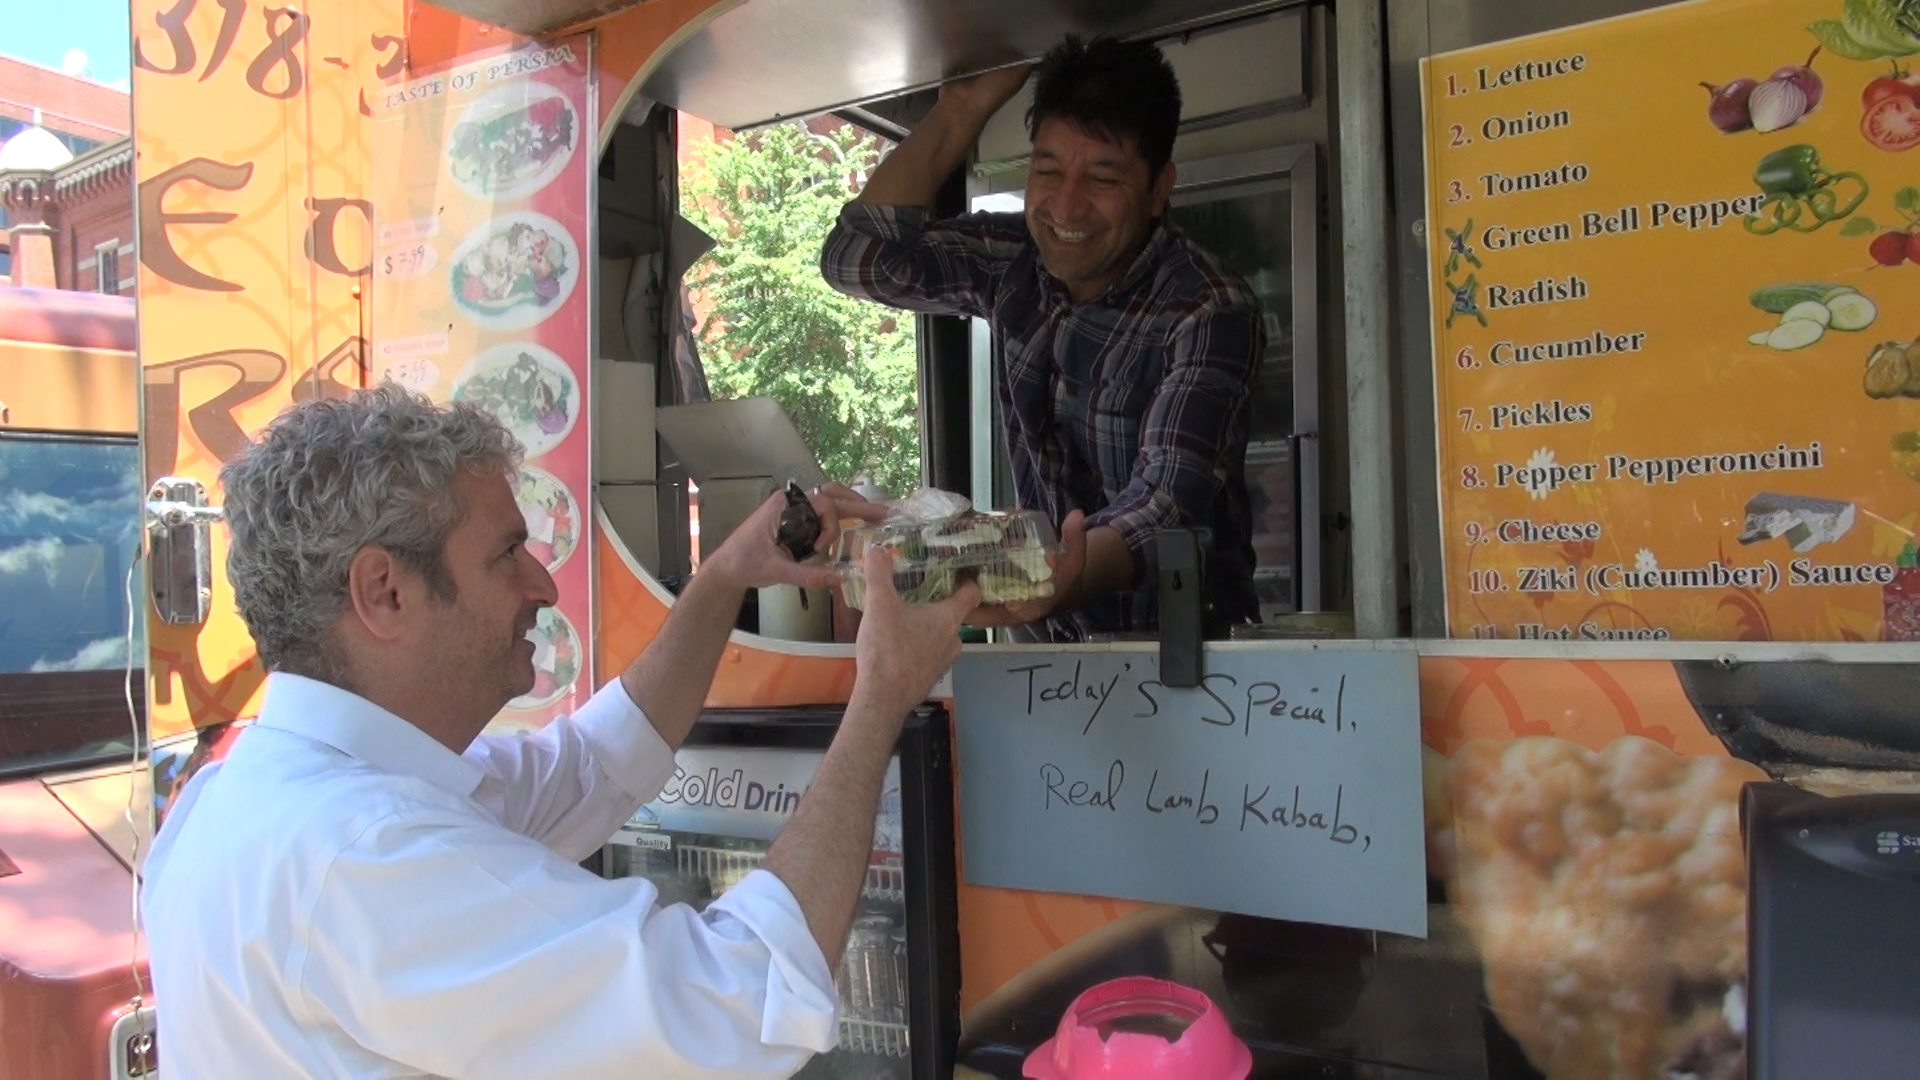 After considerable searching, Dowlati found work at a food truck. While he continues to look for an office job, he hopes to stay on with the truck. (J. Soh/VOA)